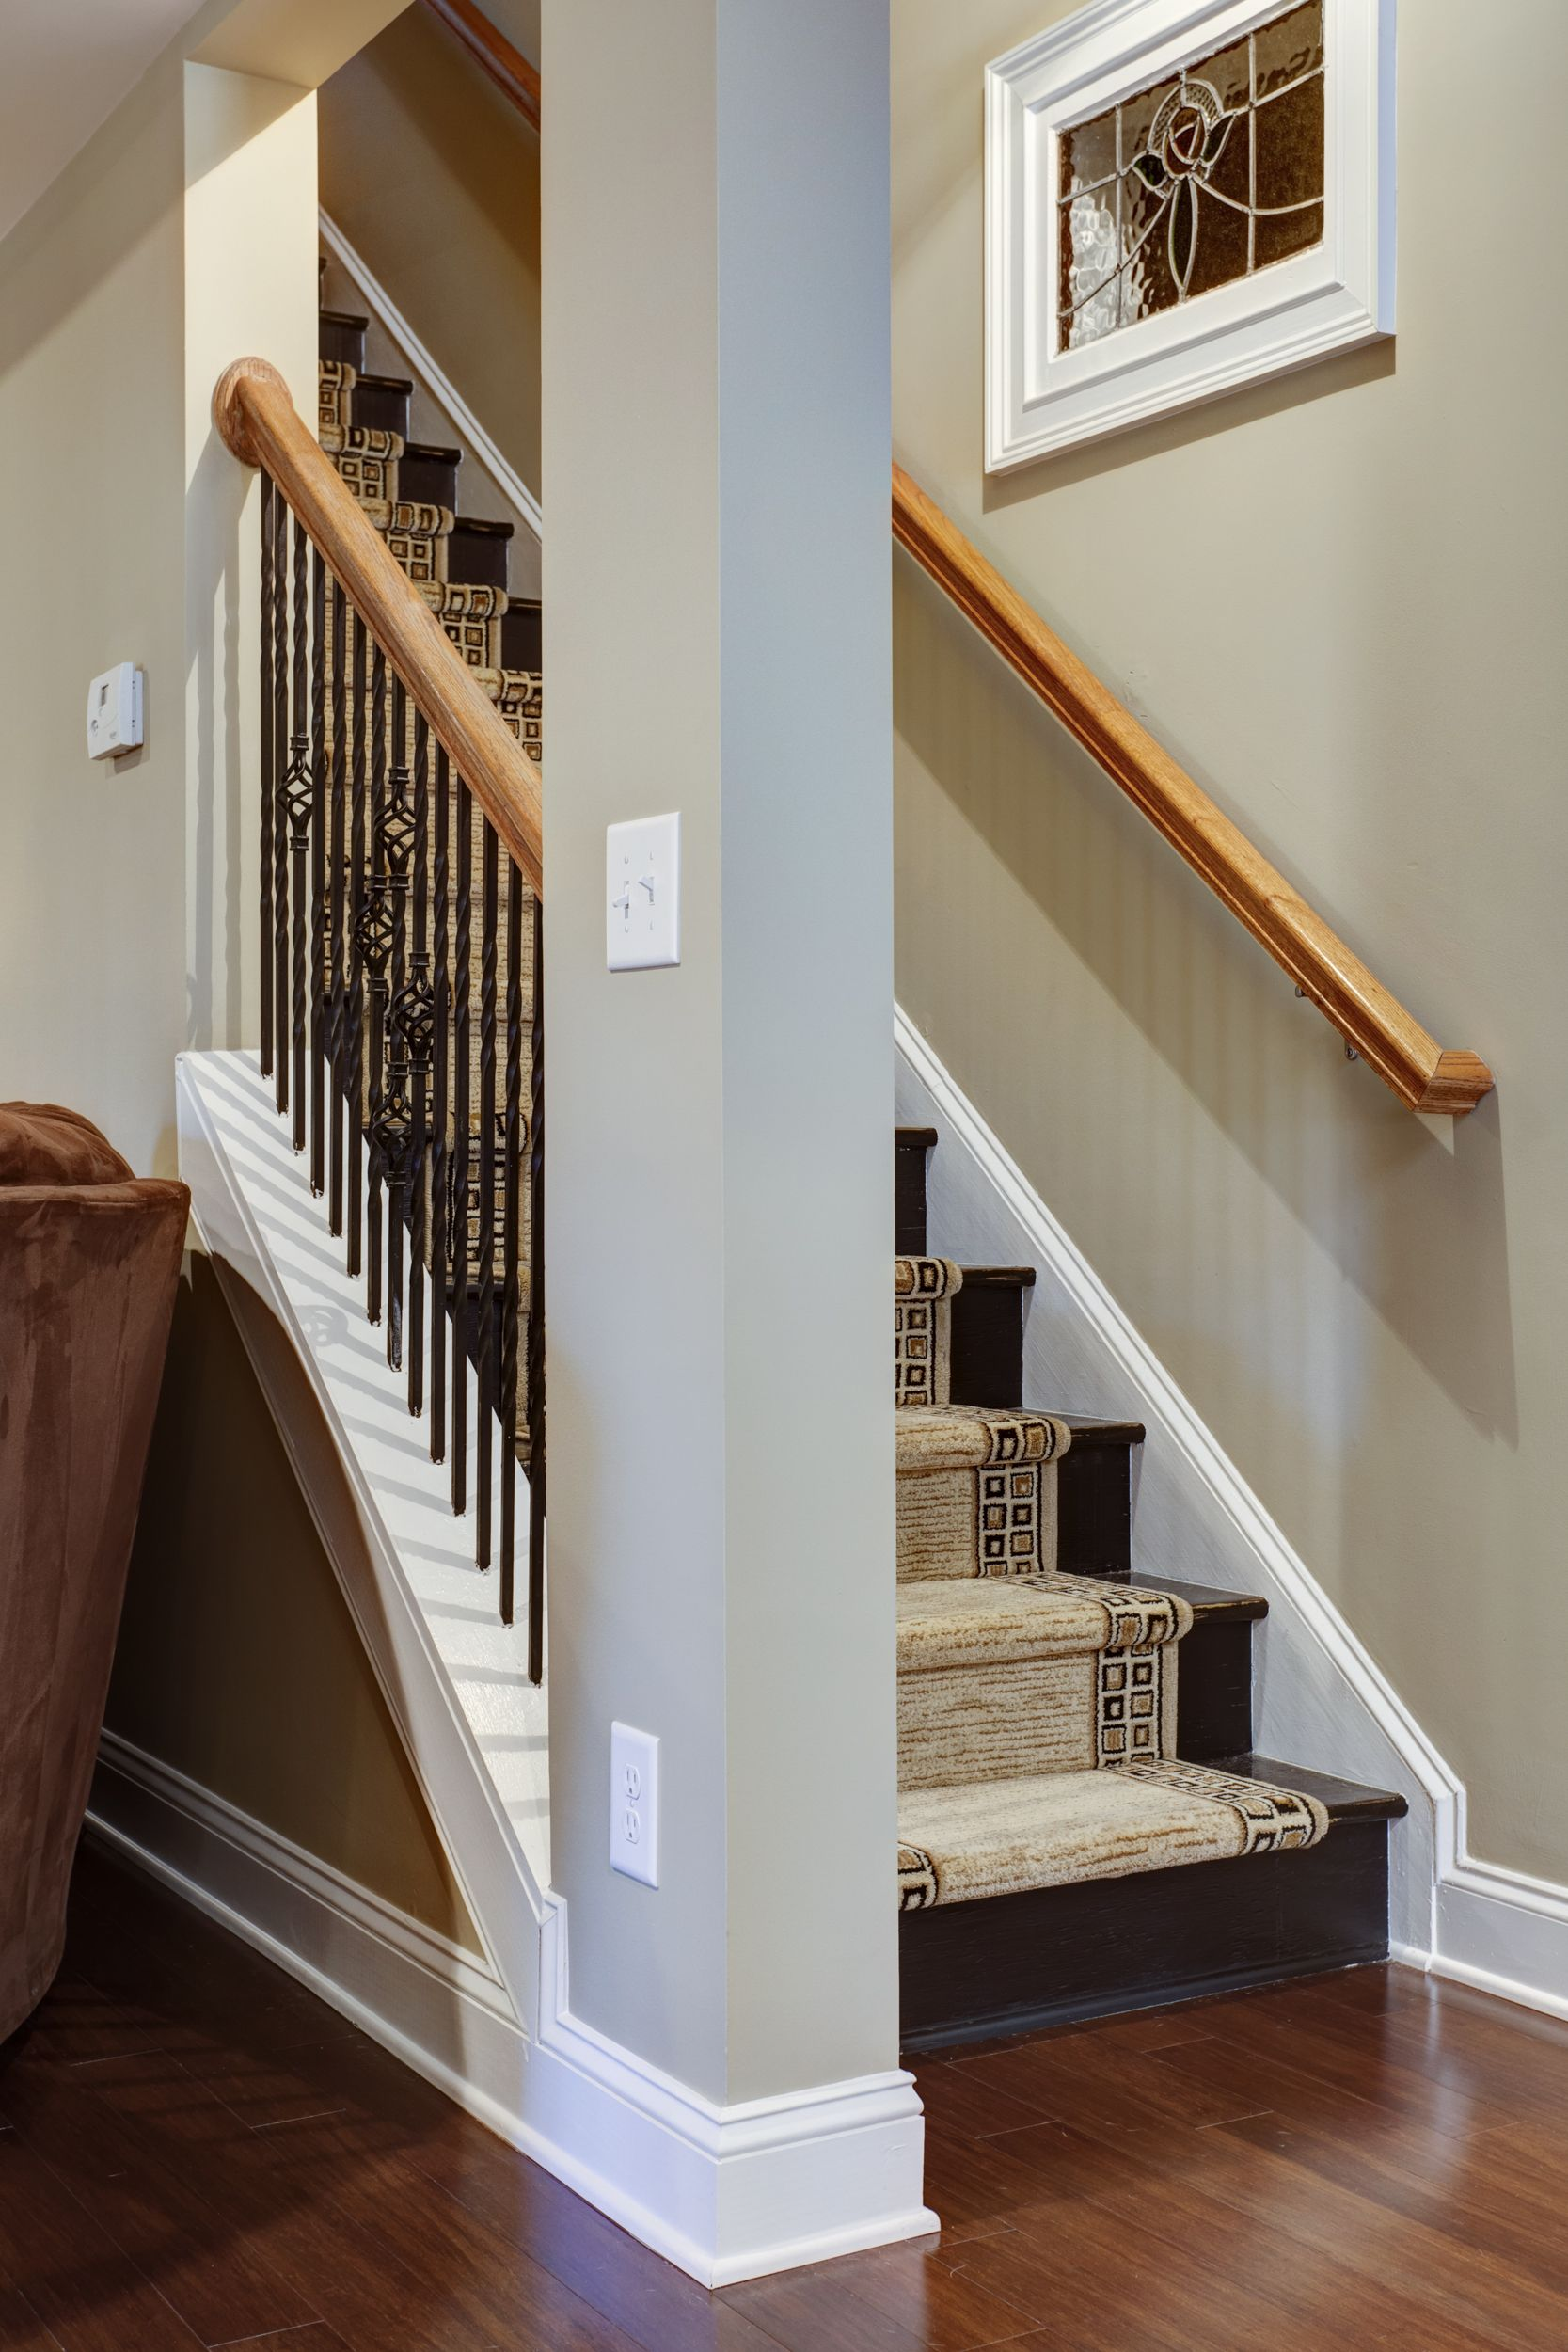 Basement Stairs Design: DIY Inexpensive Stairs In Basement. These Stairs Are